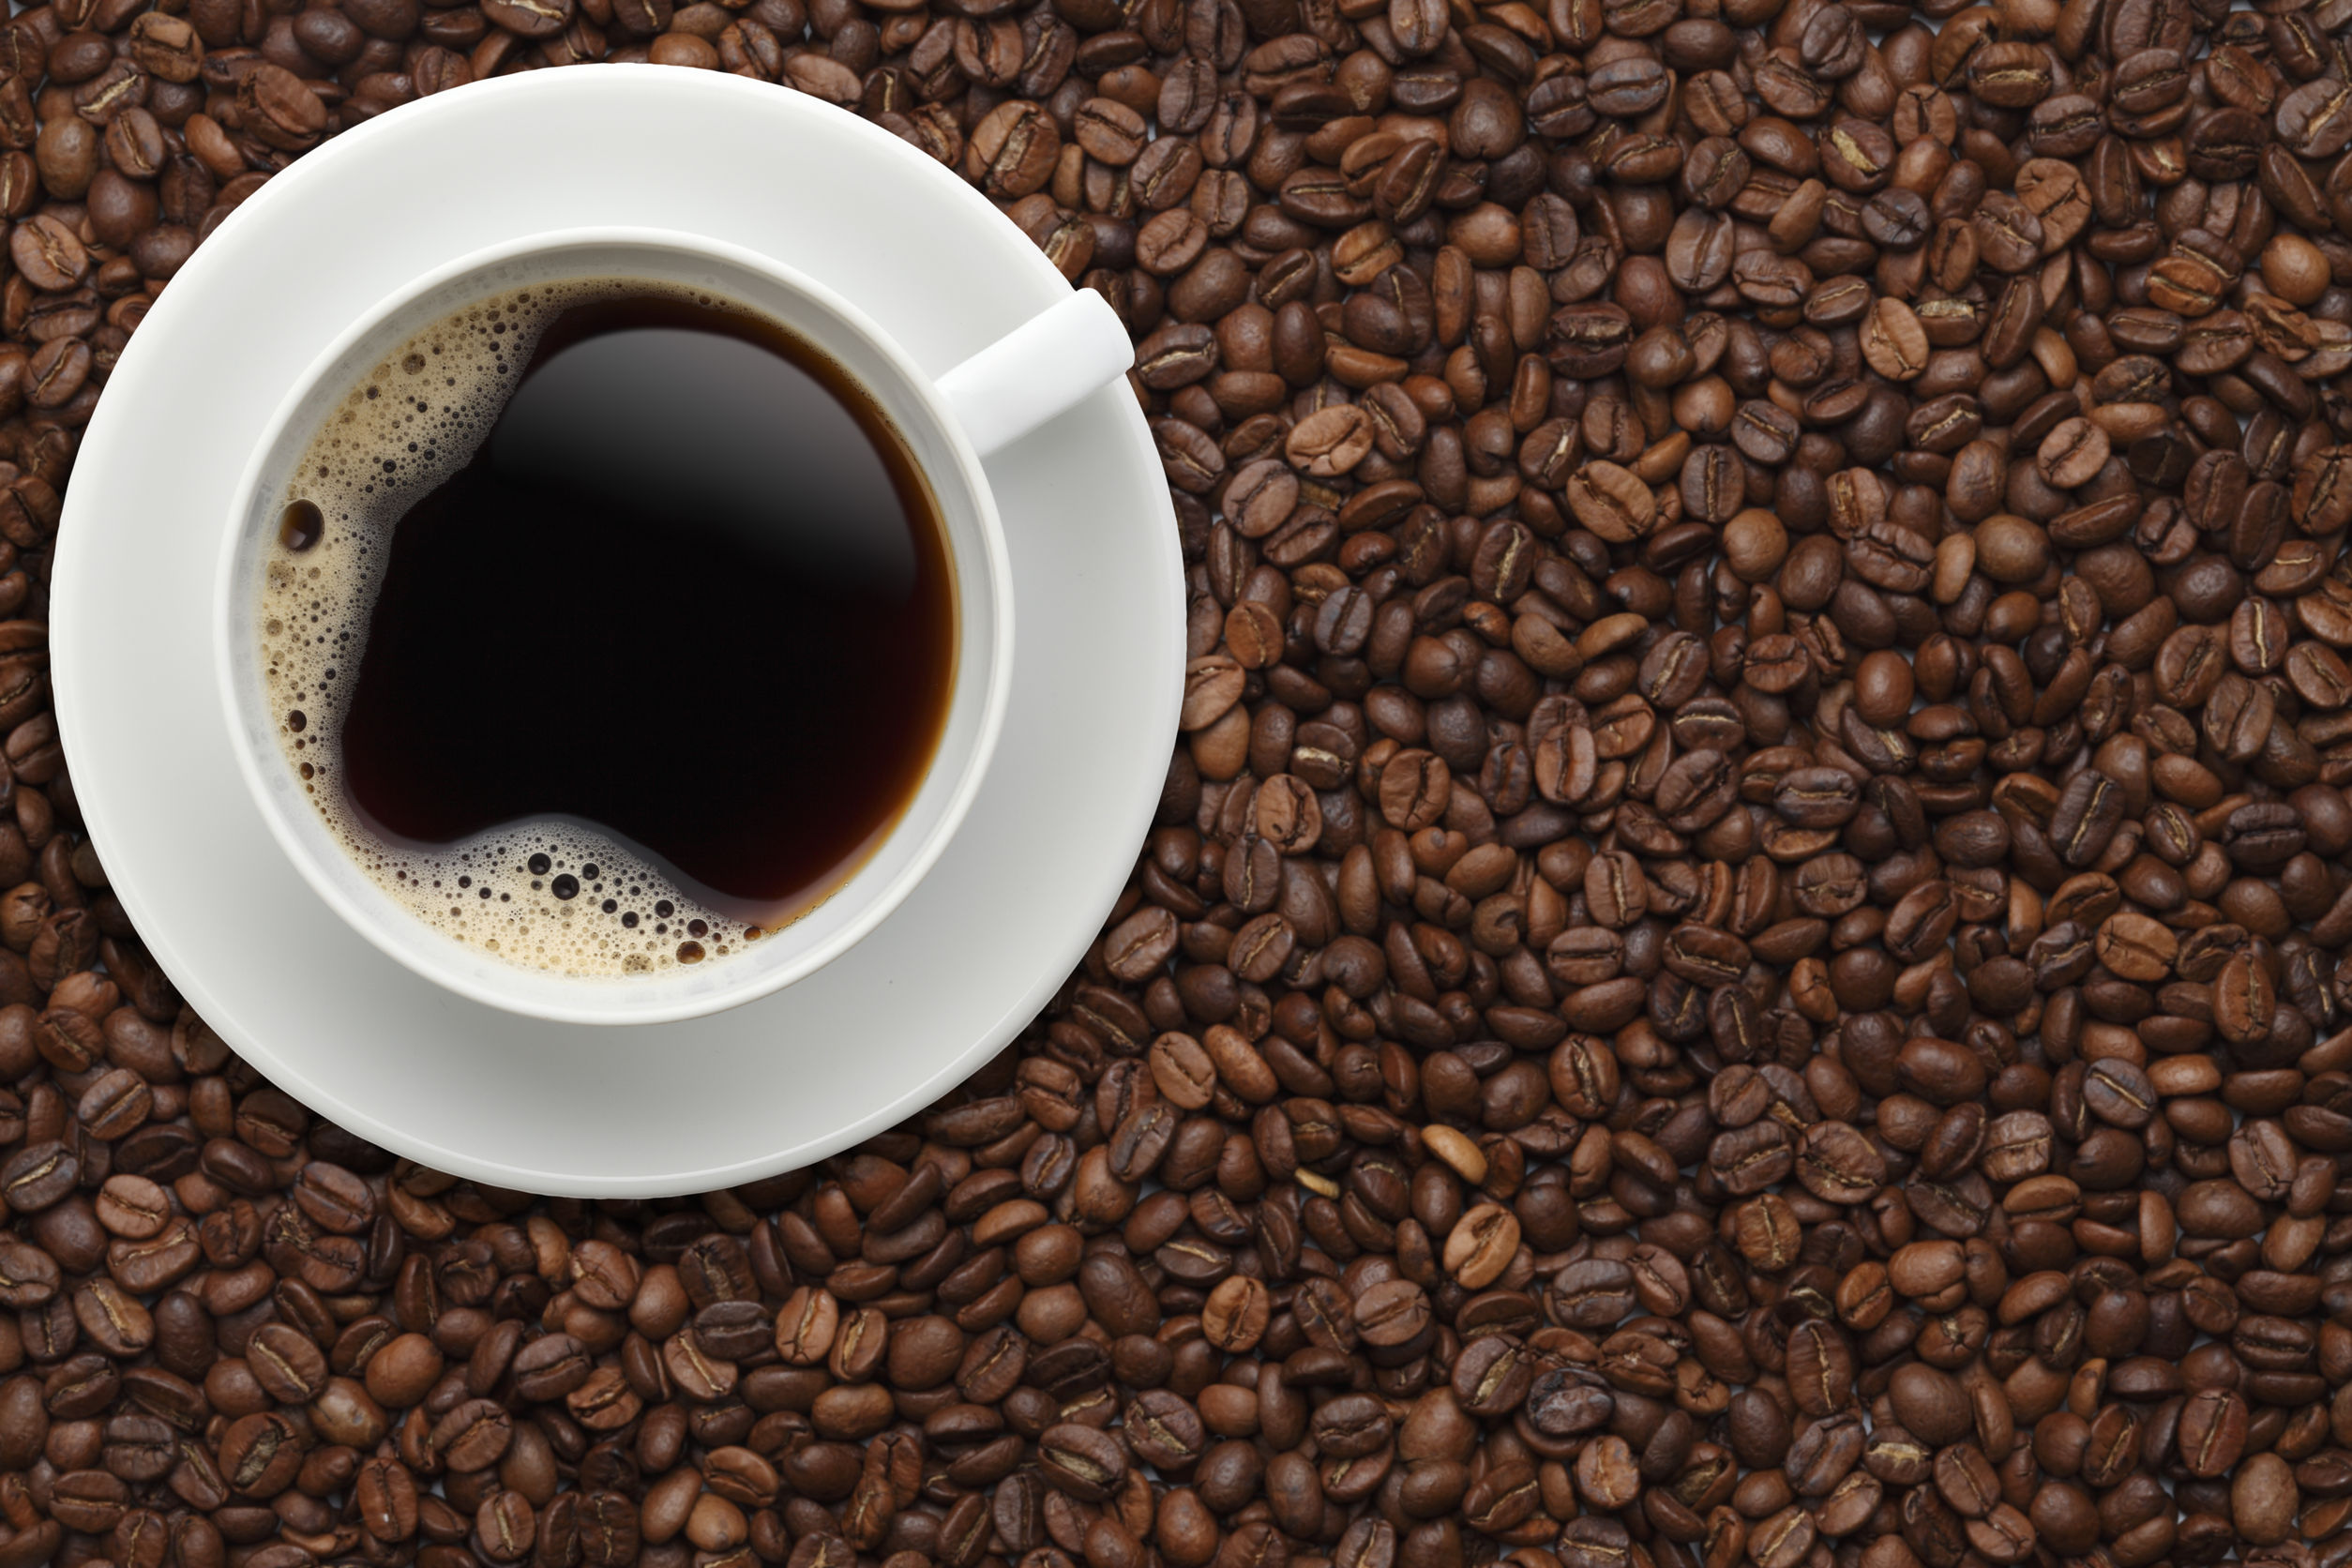 Common Mistakes When Brewing Coffee